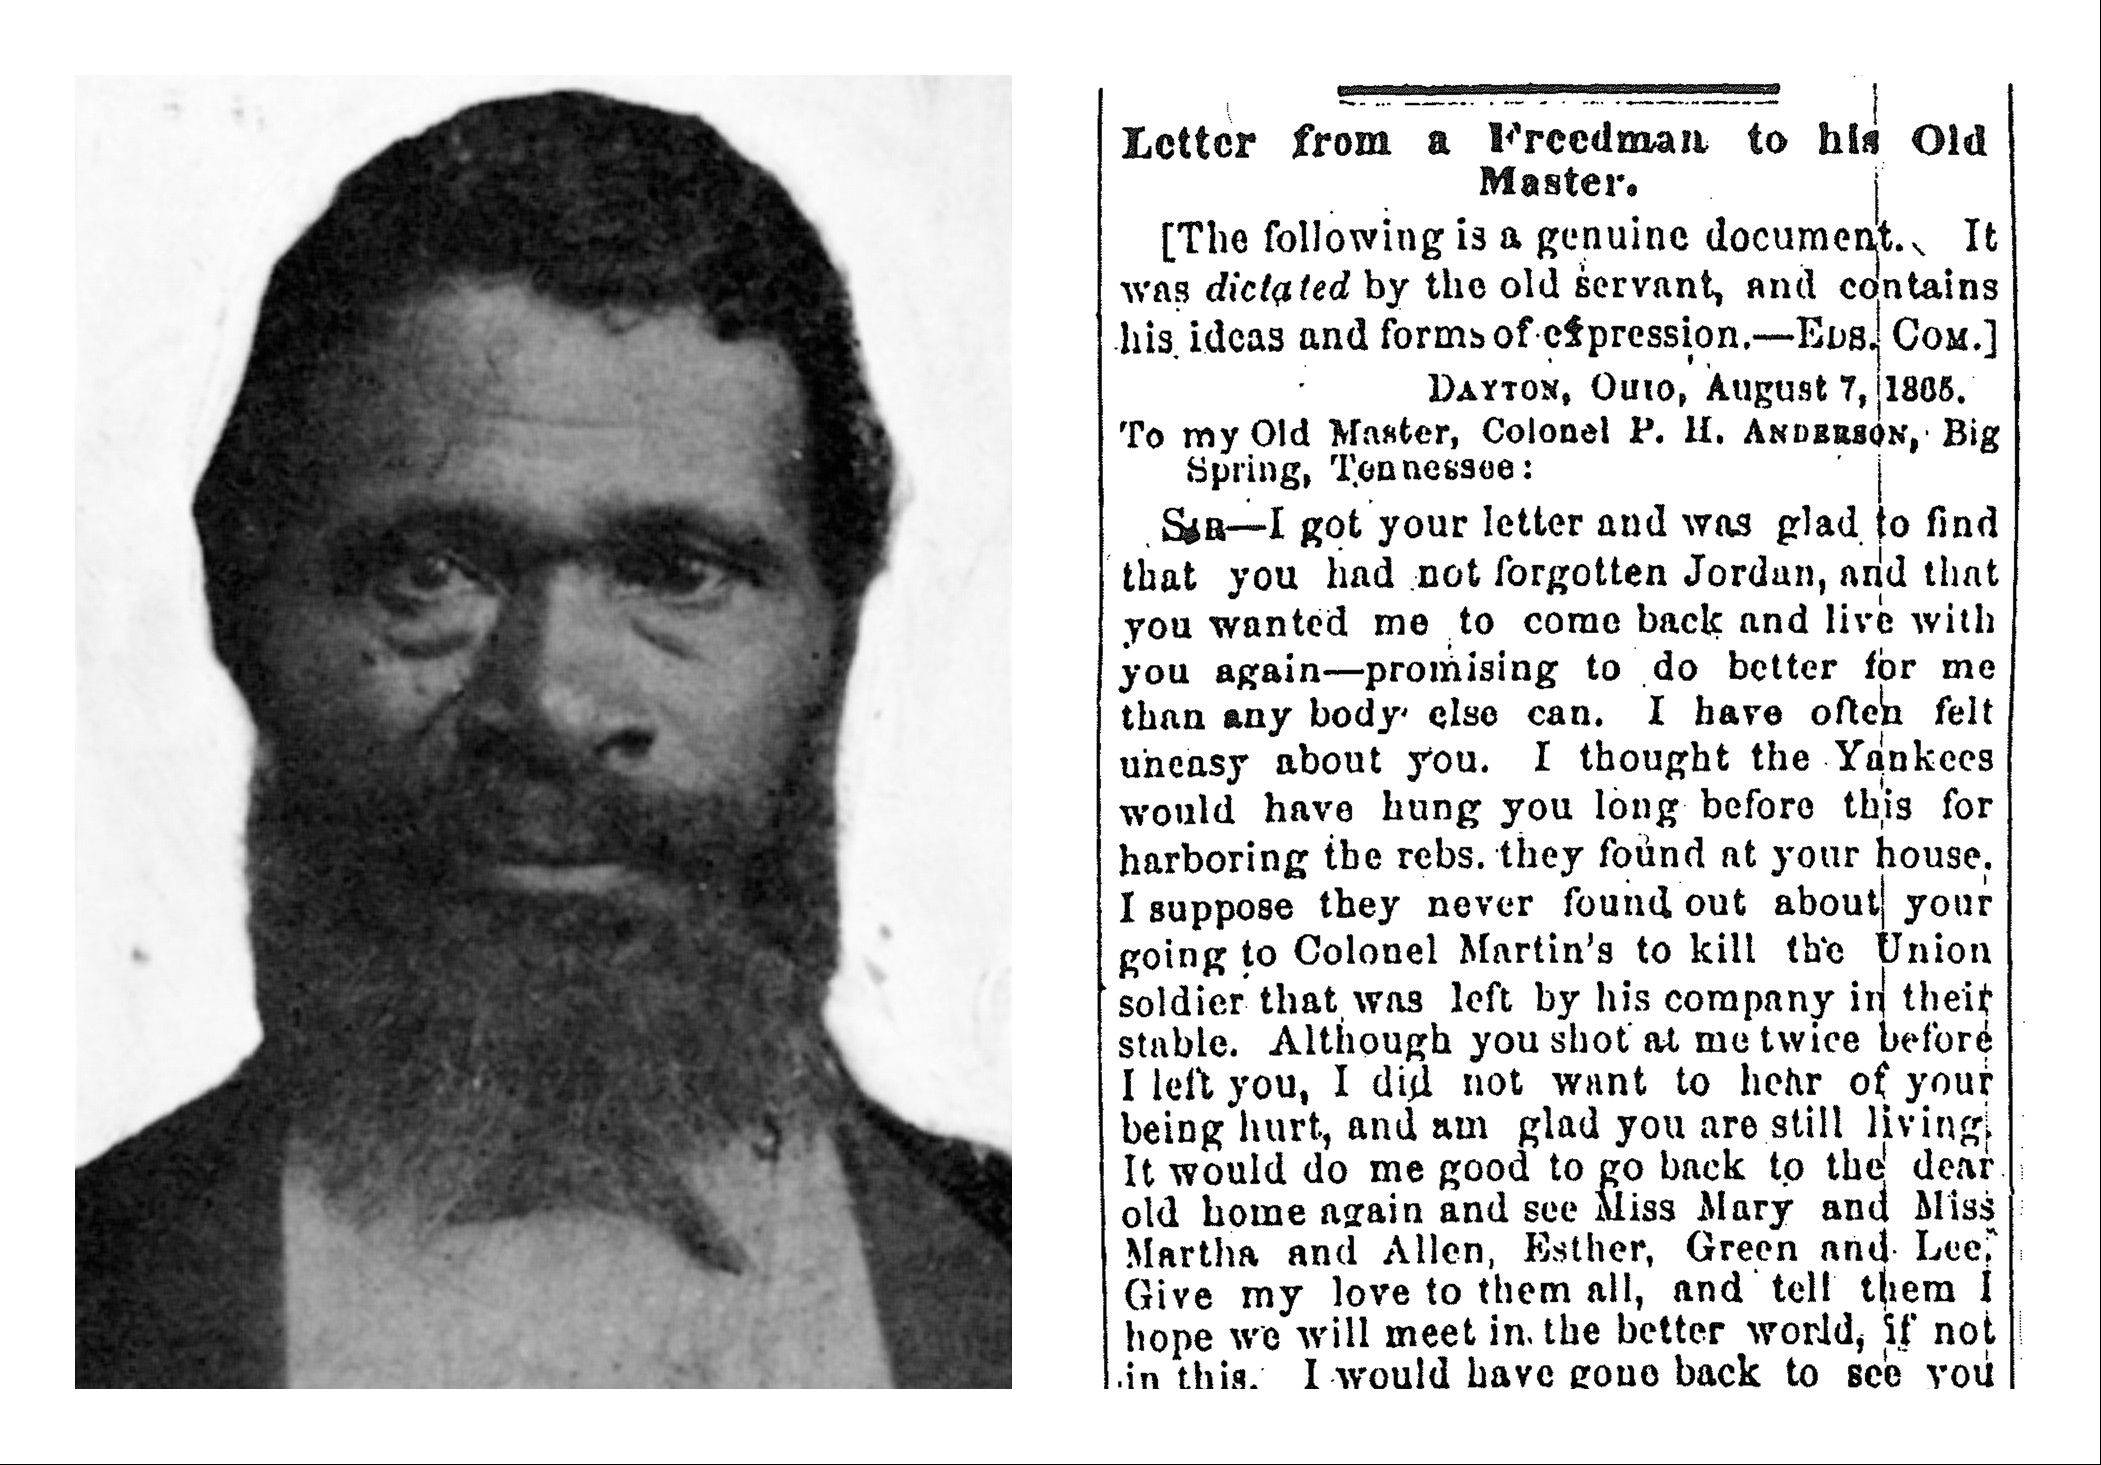 Jordon Anderson, left, is the author of the letter at right dated Aug. 7, 1865, to his former master, Patrick H. Anderson, published in the Cincinnati Commercial newspaper. Jordon Anderson was a former slave who was freed from a Tennessee plantation by Union troops in 1864 and spent his remaining 40 years in Ohio. He lived quietly and likely would have been forgotten if not for the remarkable letter published shortly after the Civil War.